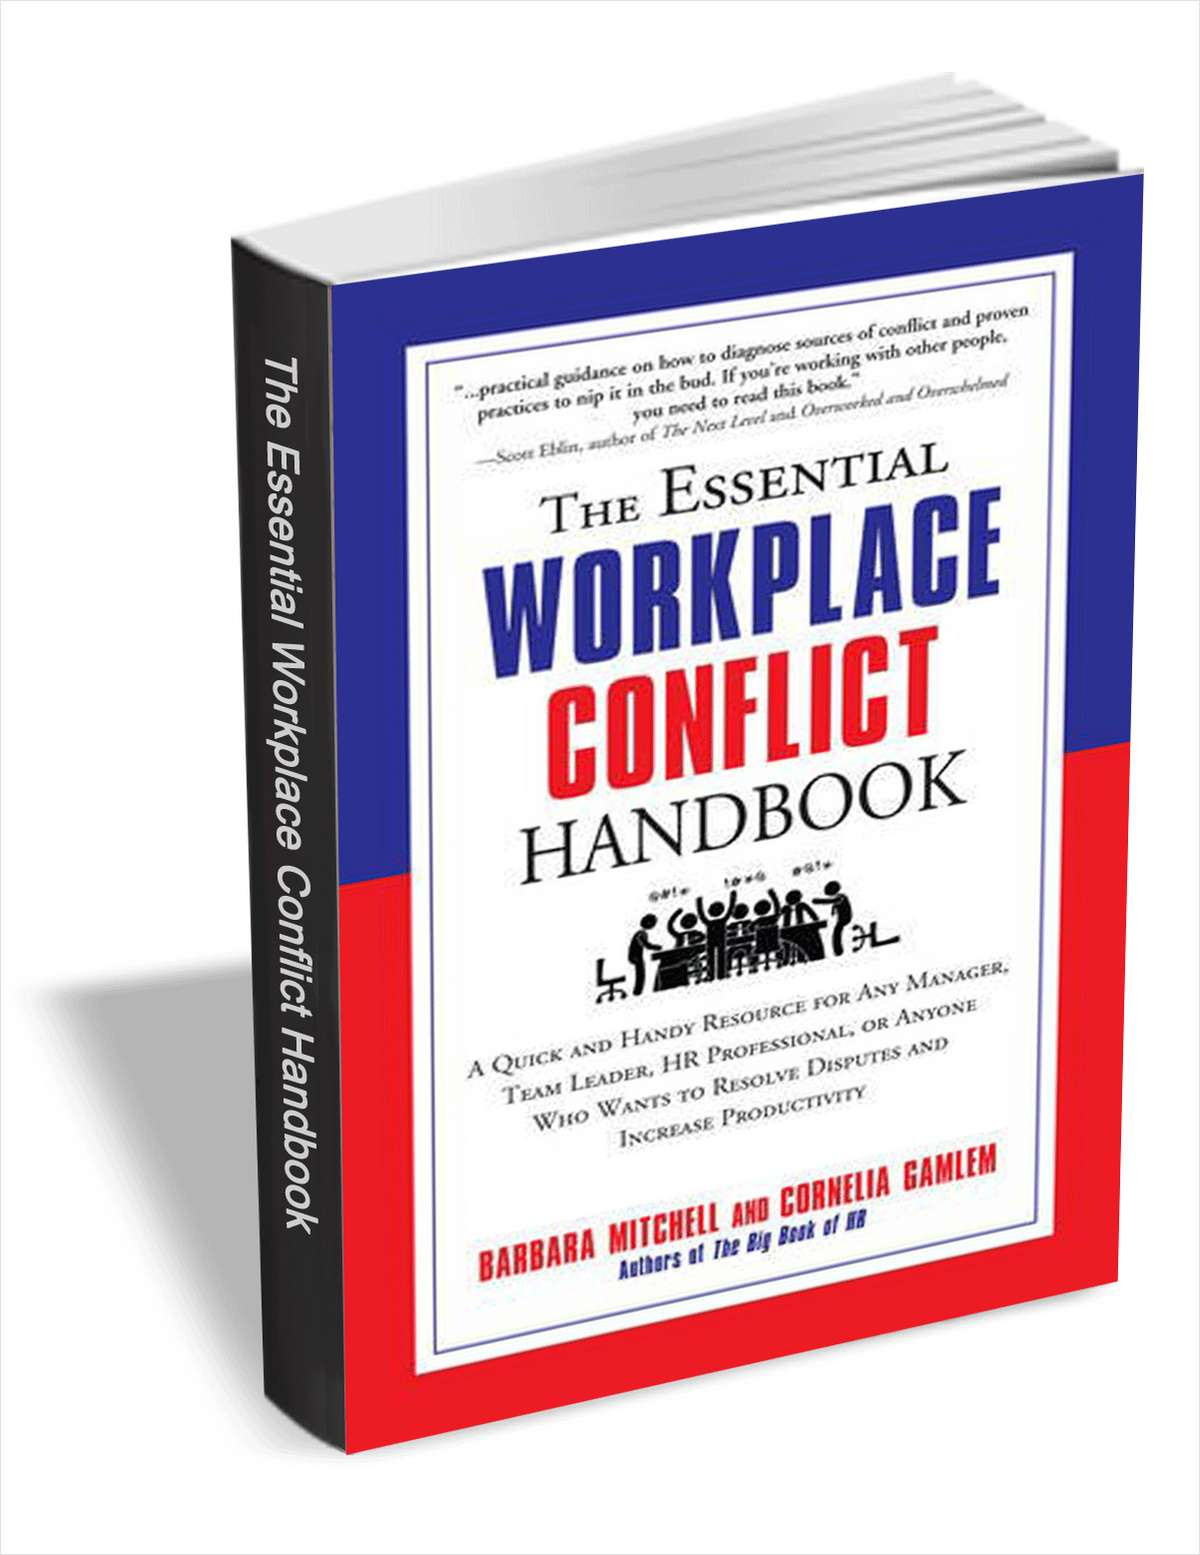 The Essential Workplace Conflict Handbook ($7 Value) FREE For a Limited Time